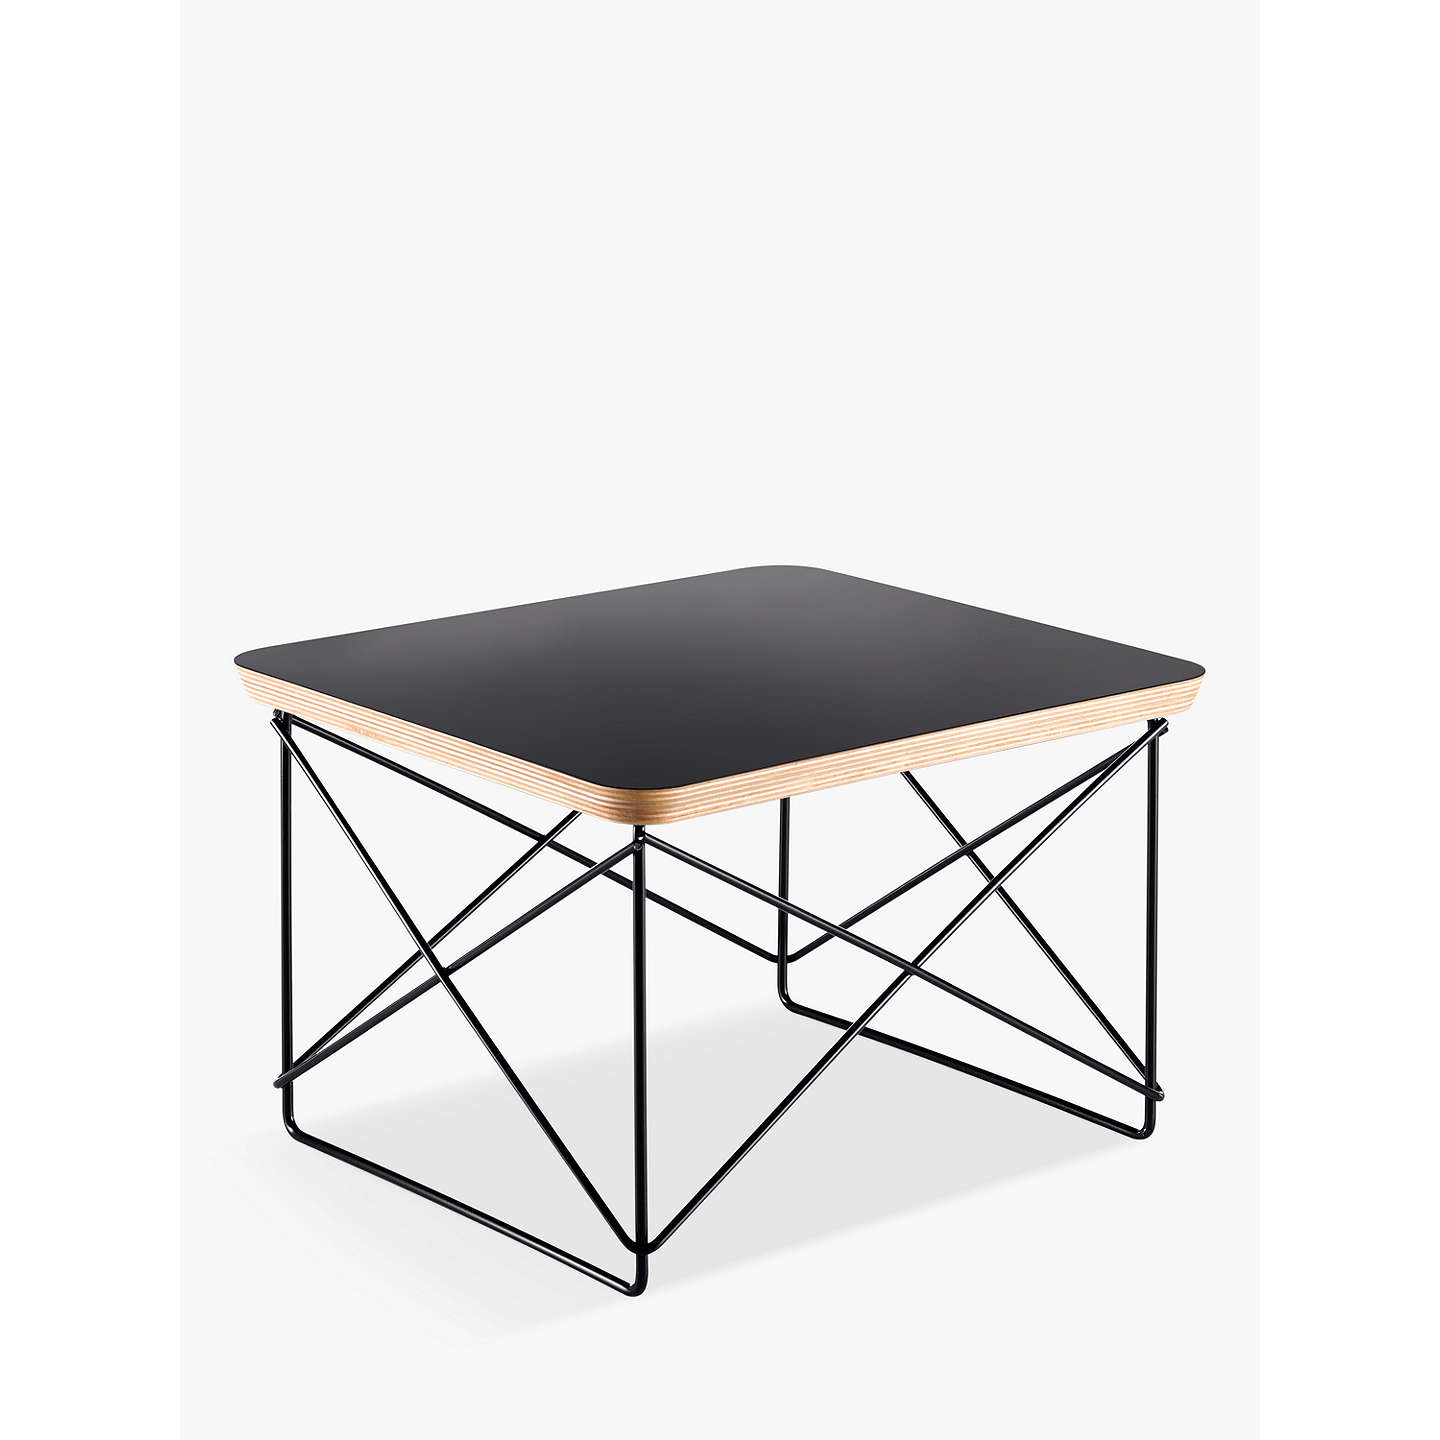 Ordinaire BuyVitra Eames LTR Occasional Side Table, Black Online At Johnlewis.com